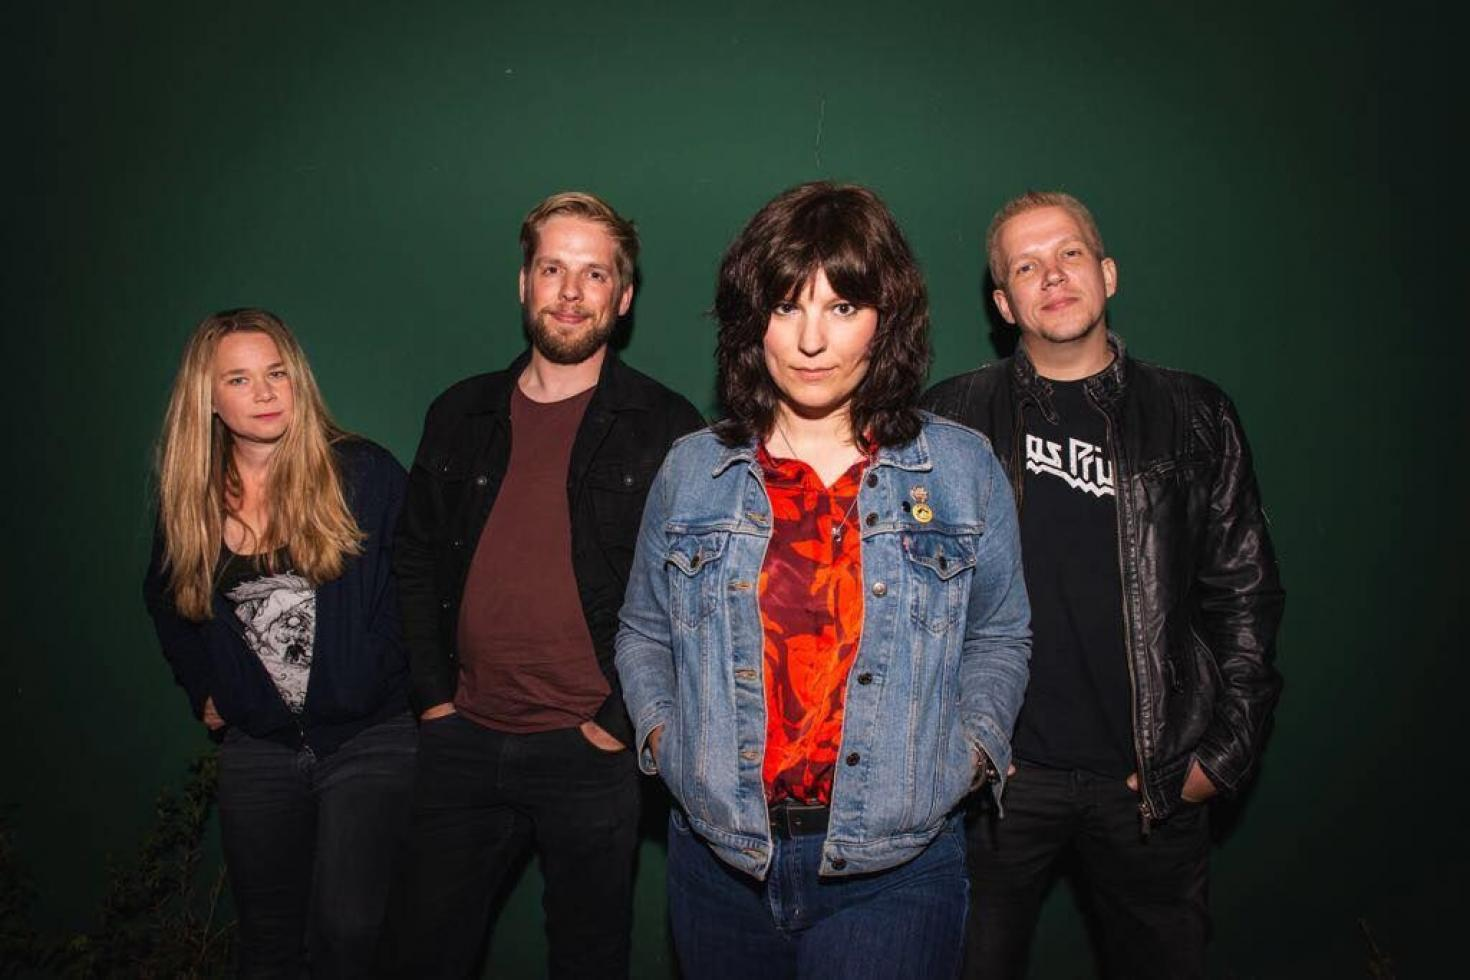 March release new single 'Fear Of Roses'